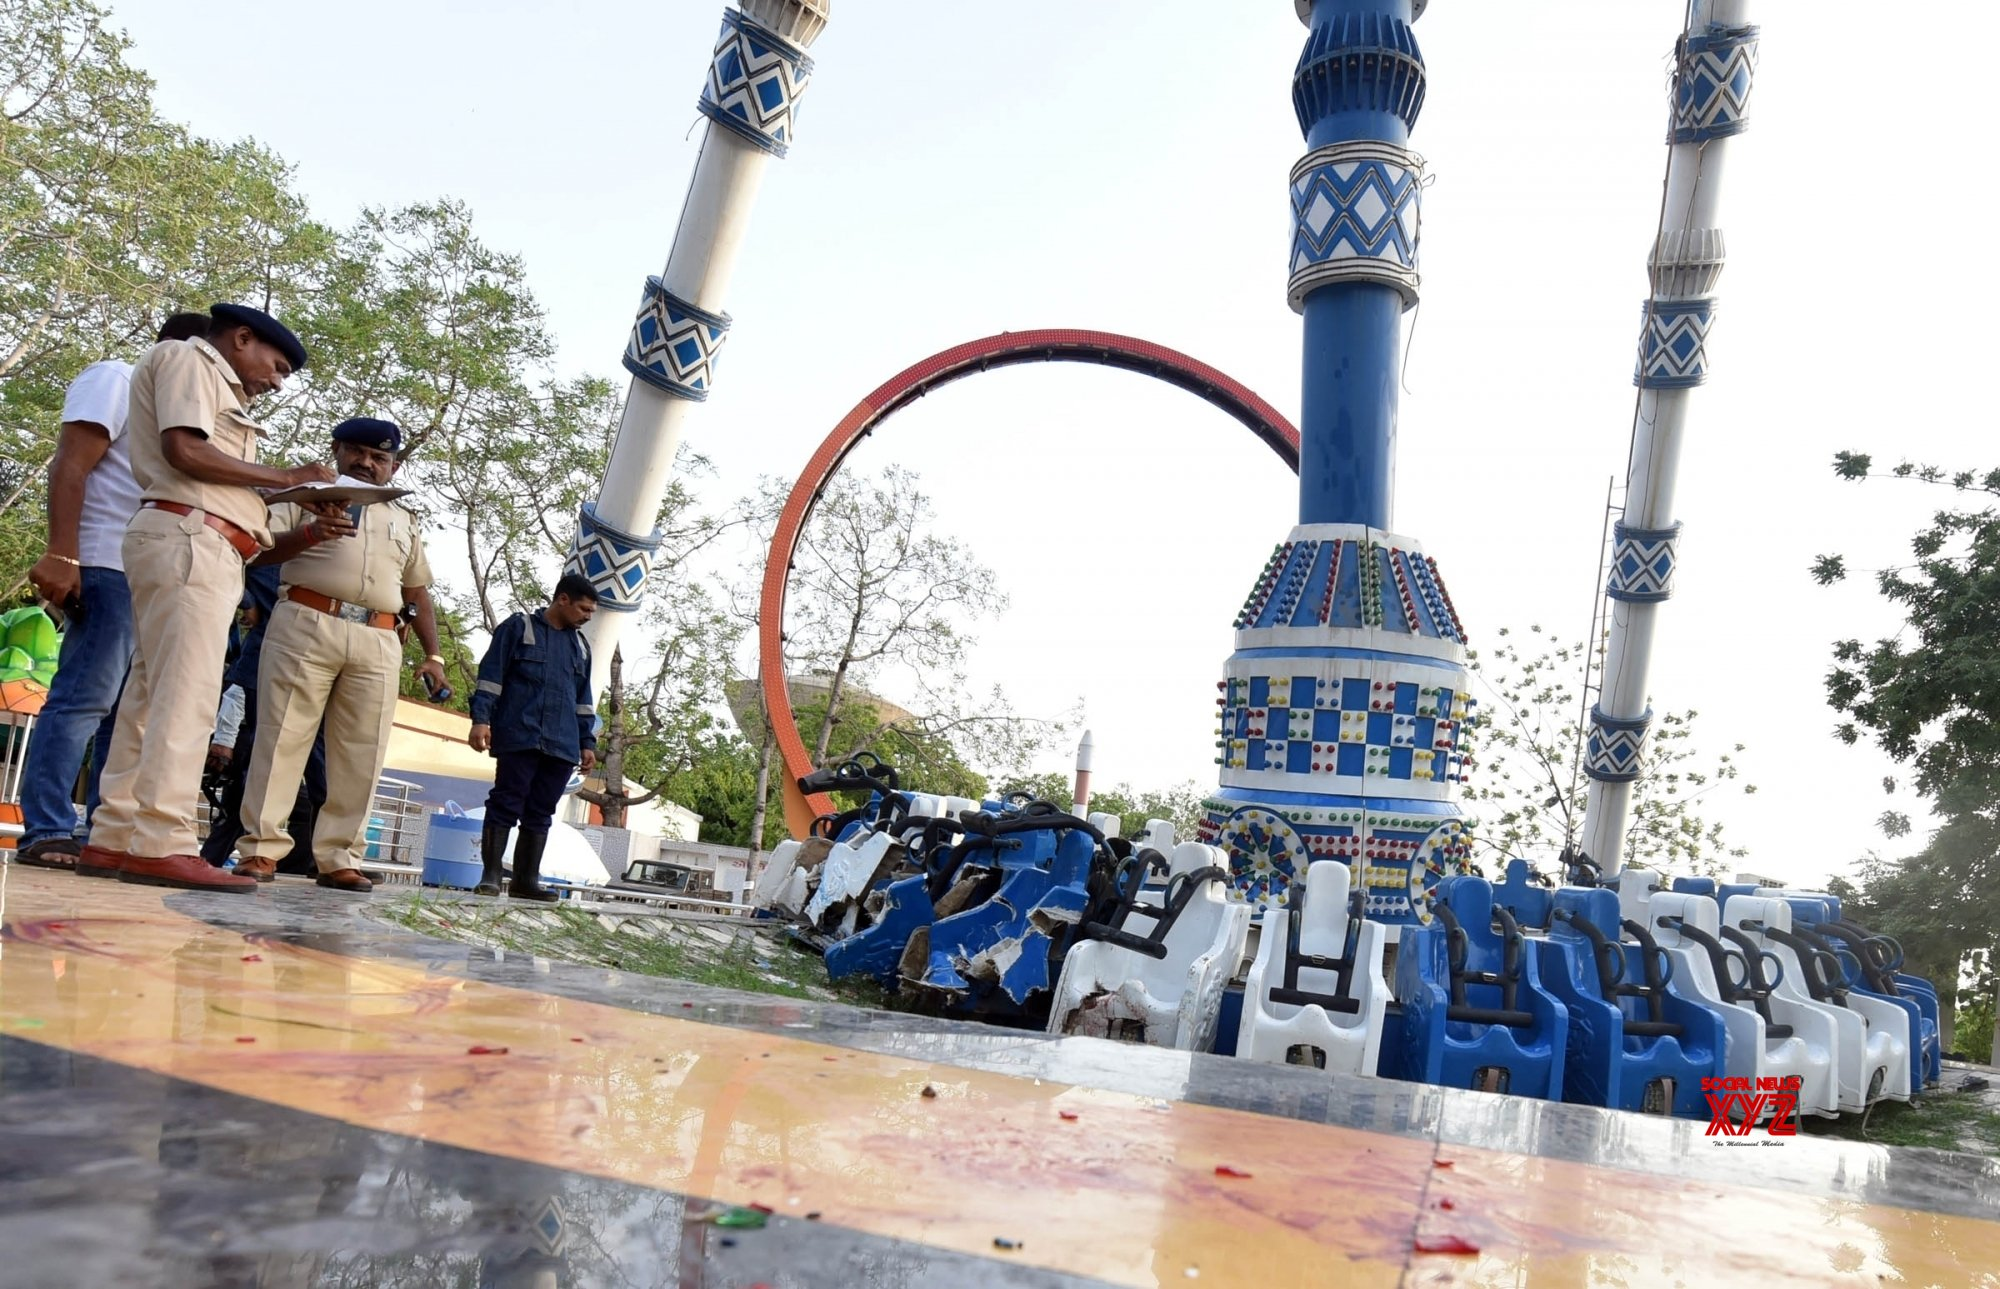 Freak roller-coaster ride collapse claims three lives in Ahmedabad